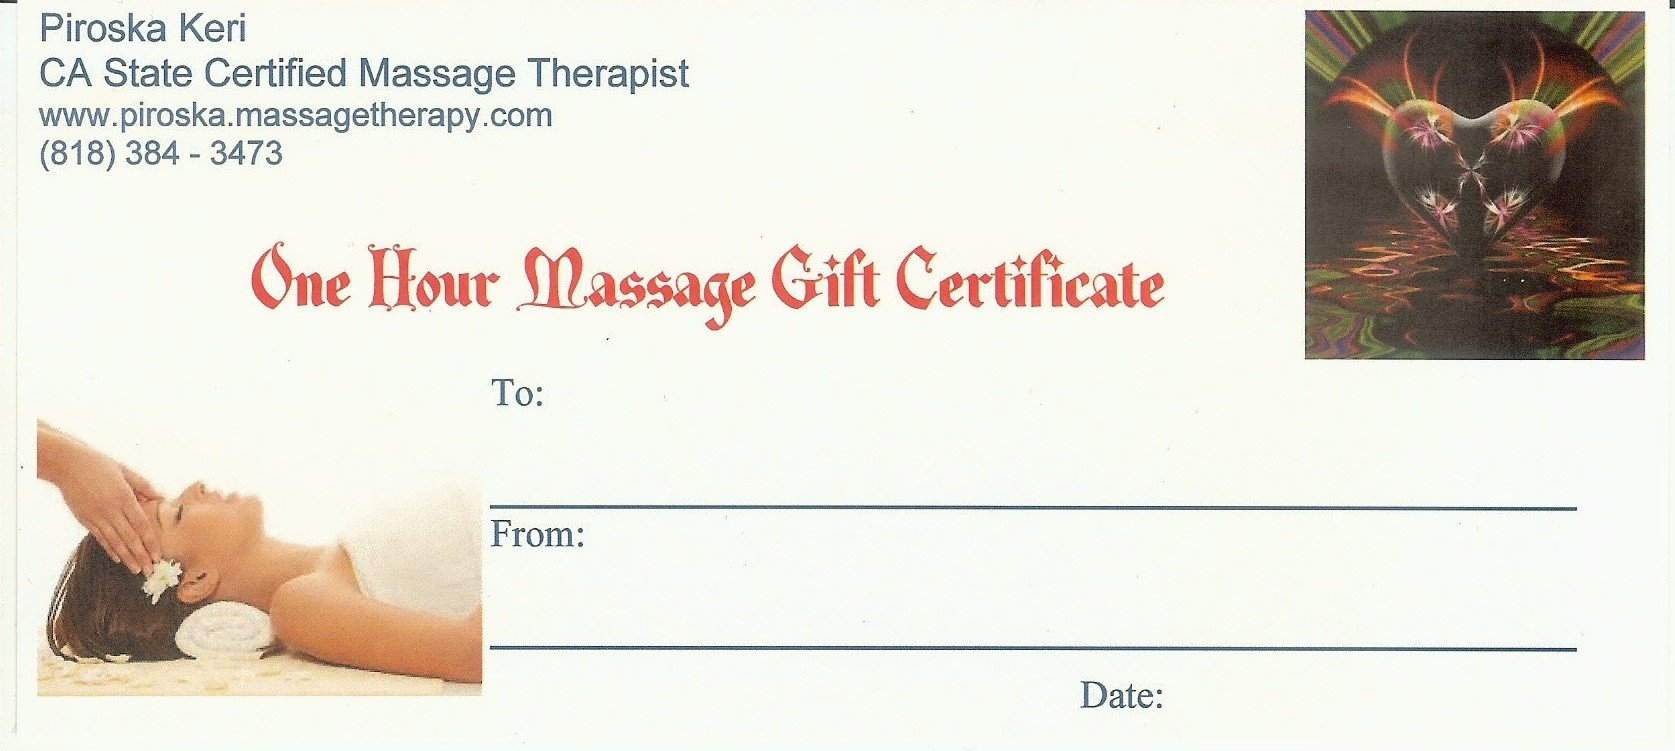 Free Massage Gift Certificate Template Buynow Paypal Credit Card